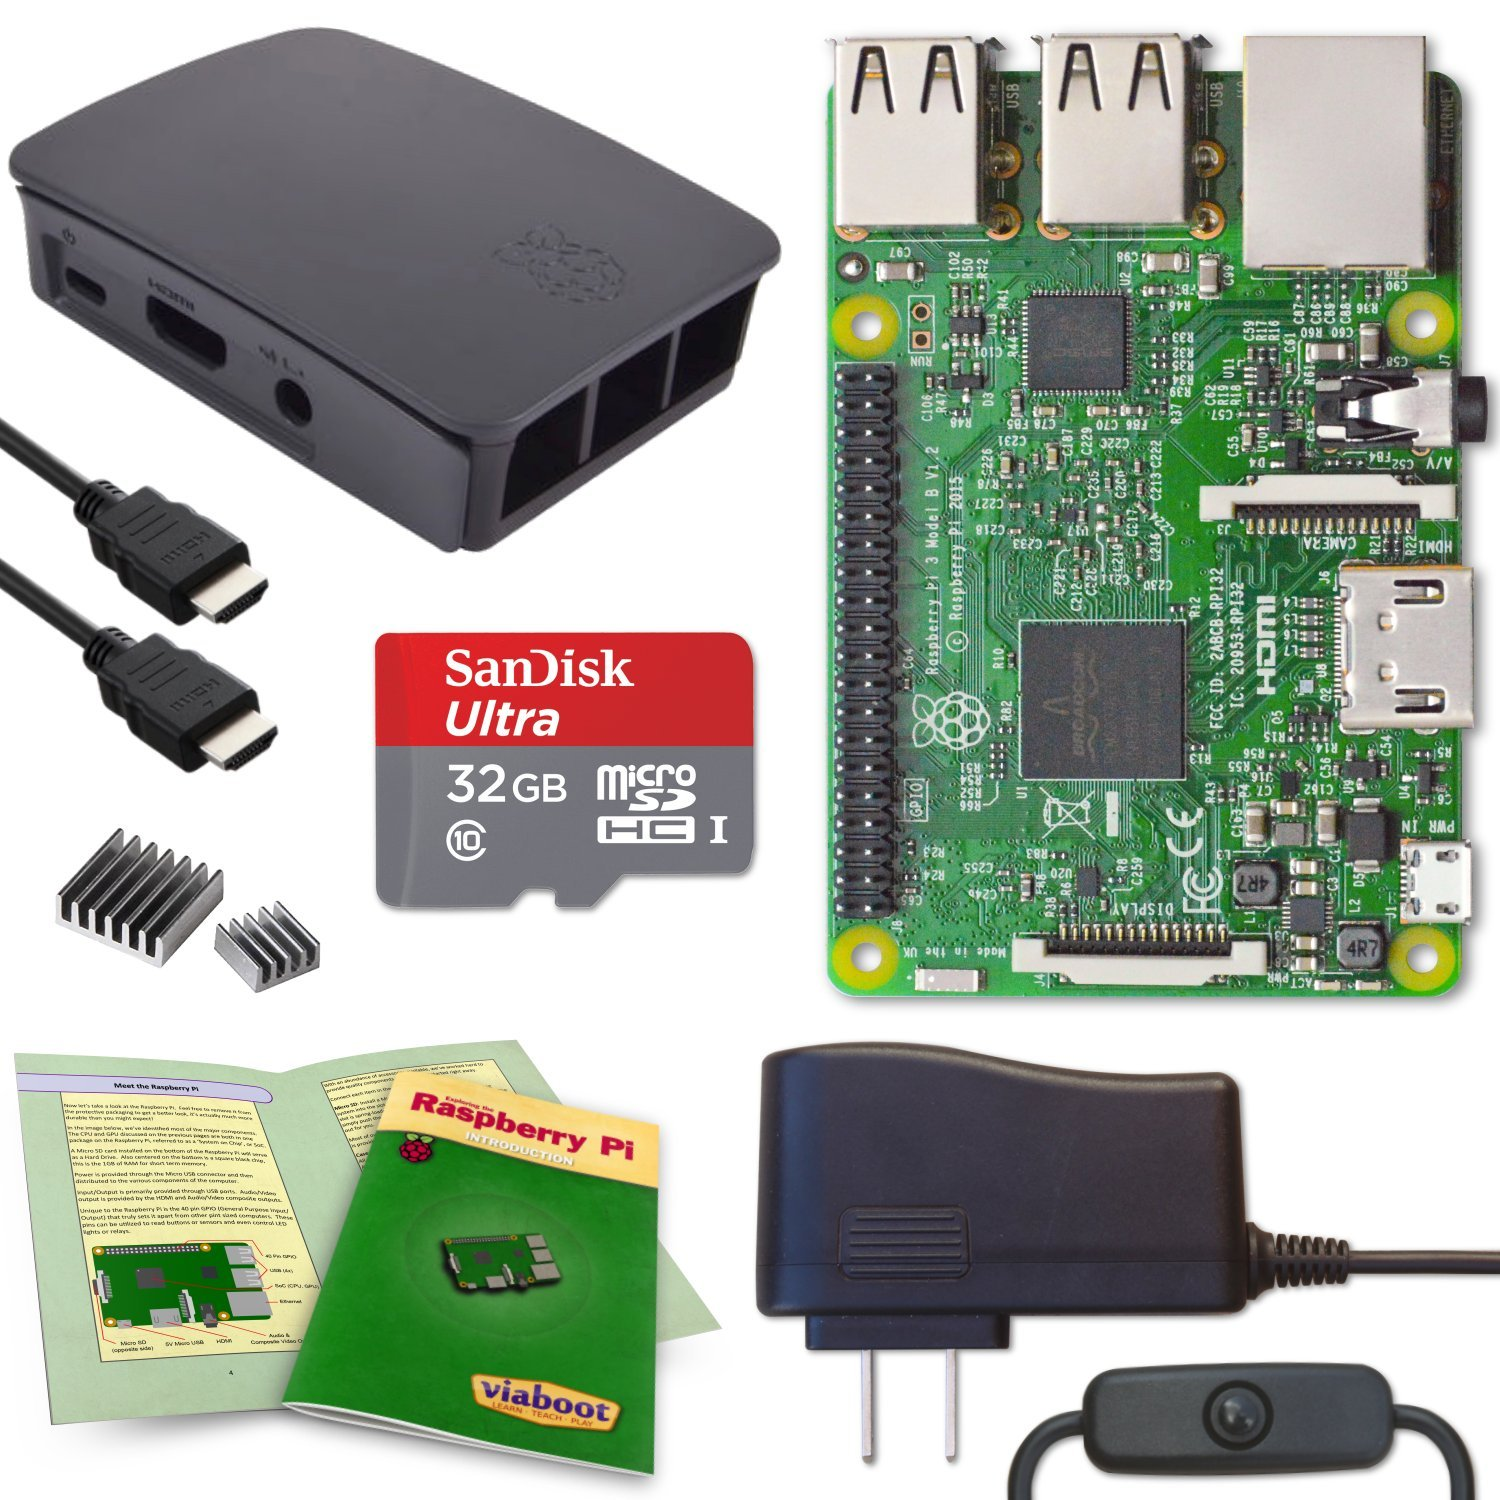 Viaboot Raspberry Pi 3 Complete Kit — 32GB Official Micro SD Card, Official Black/Gray Case Edition by Viaboot (Image #1)